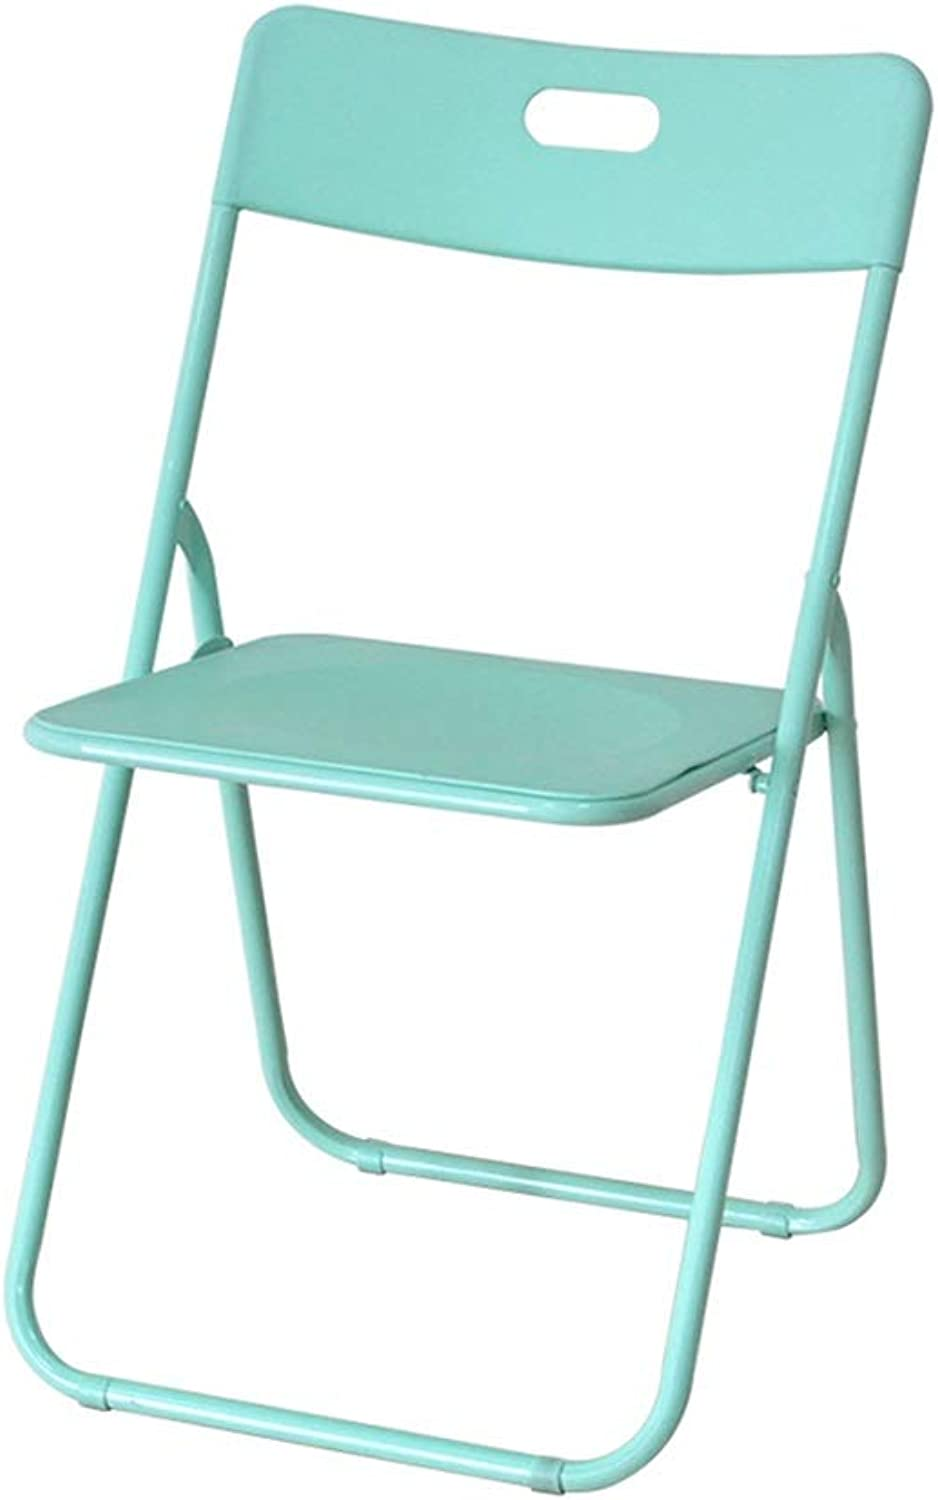 AGLZWY Folding Chairs Multipurpose Plastic Thicken Non-Slip Portable Save Space Living Room Bench Computer Change shoes Stool,Multiple Colour (color   Green, Size   46X46X79CM)